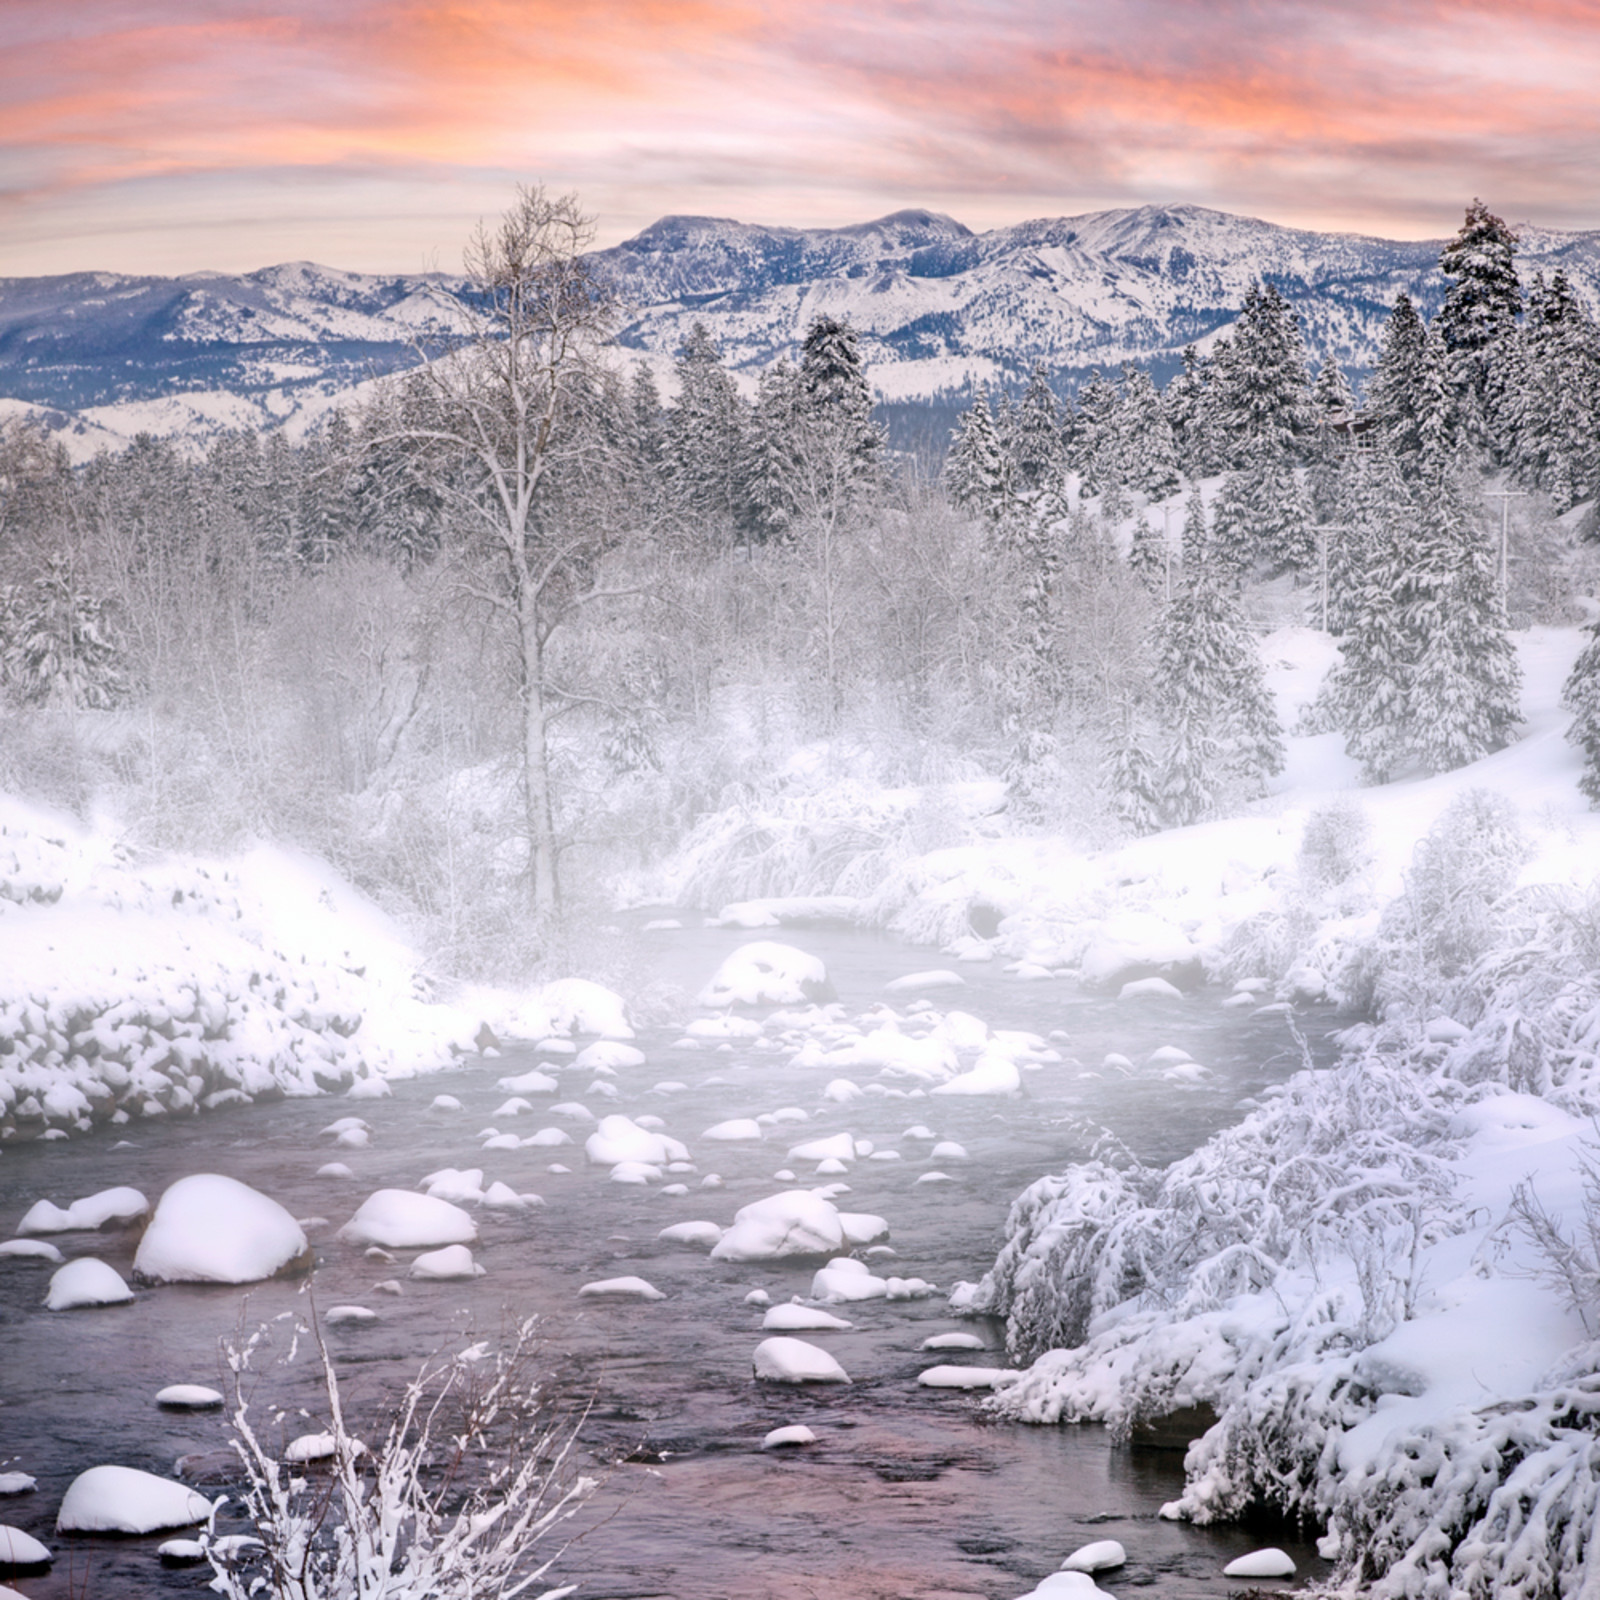 Winter evening truckee rivers ci2t82